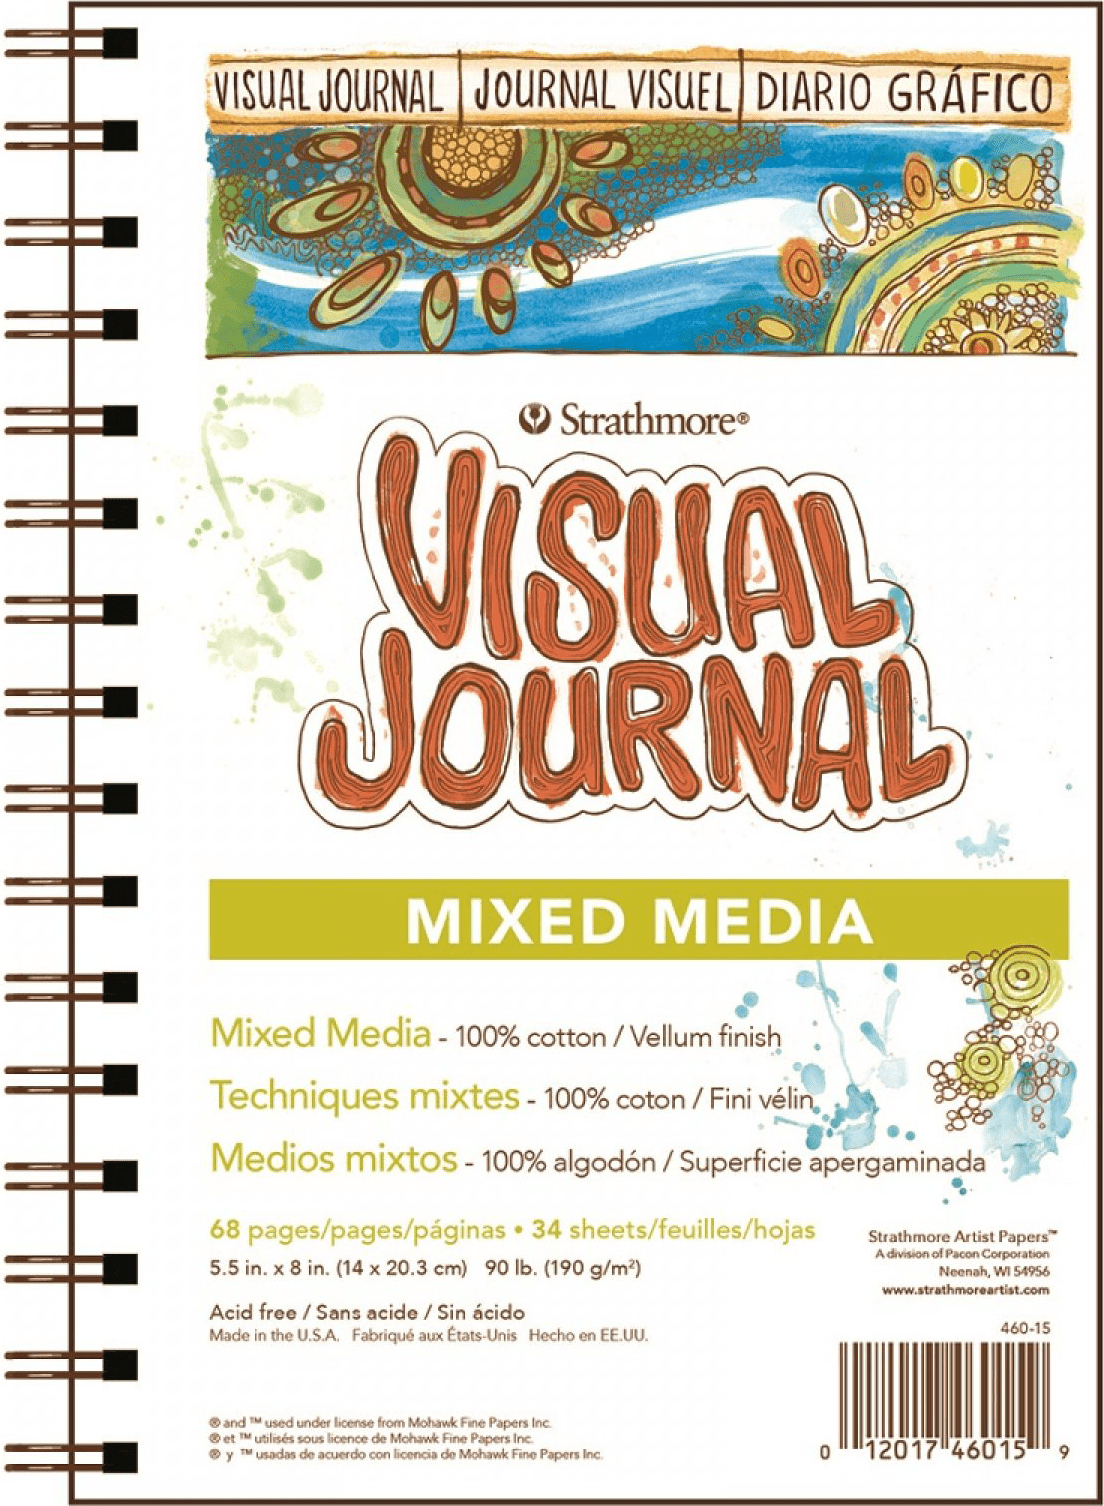 Strathmore Visual Journal Mixed Media 500 series 14x20,3cm 190g 68ks